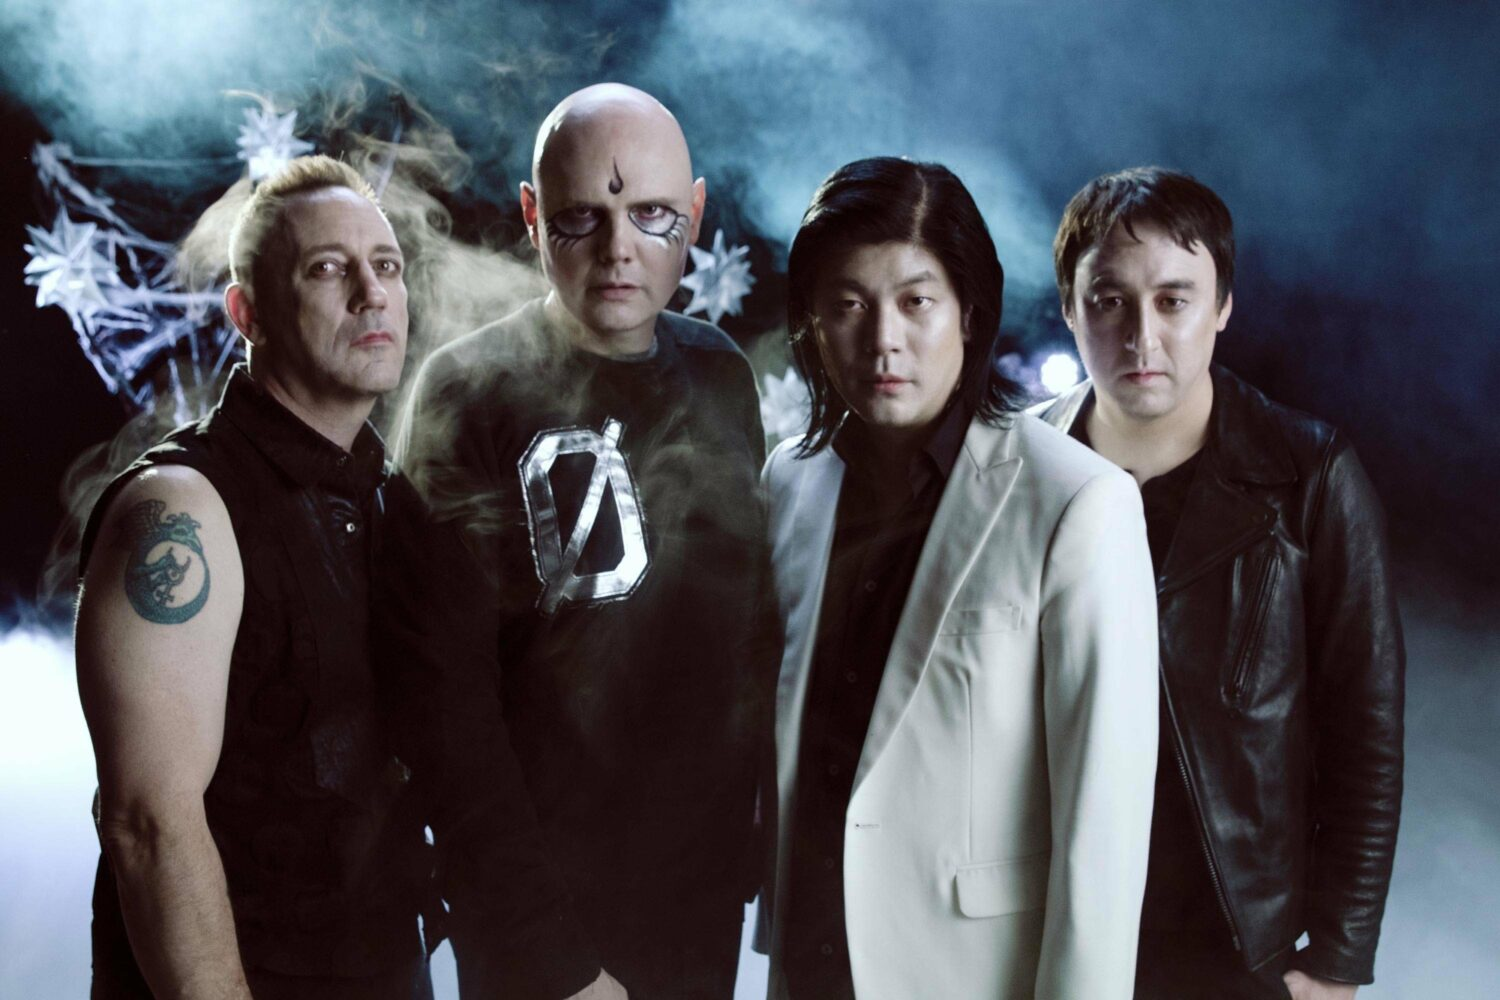 Smashing Pumpkins, The Hives, Black Midi and more added to Mad Cool 2019